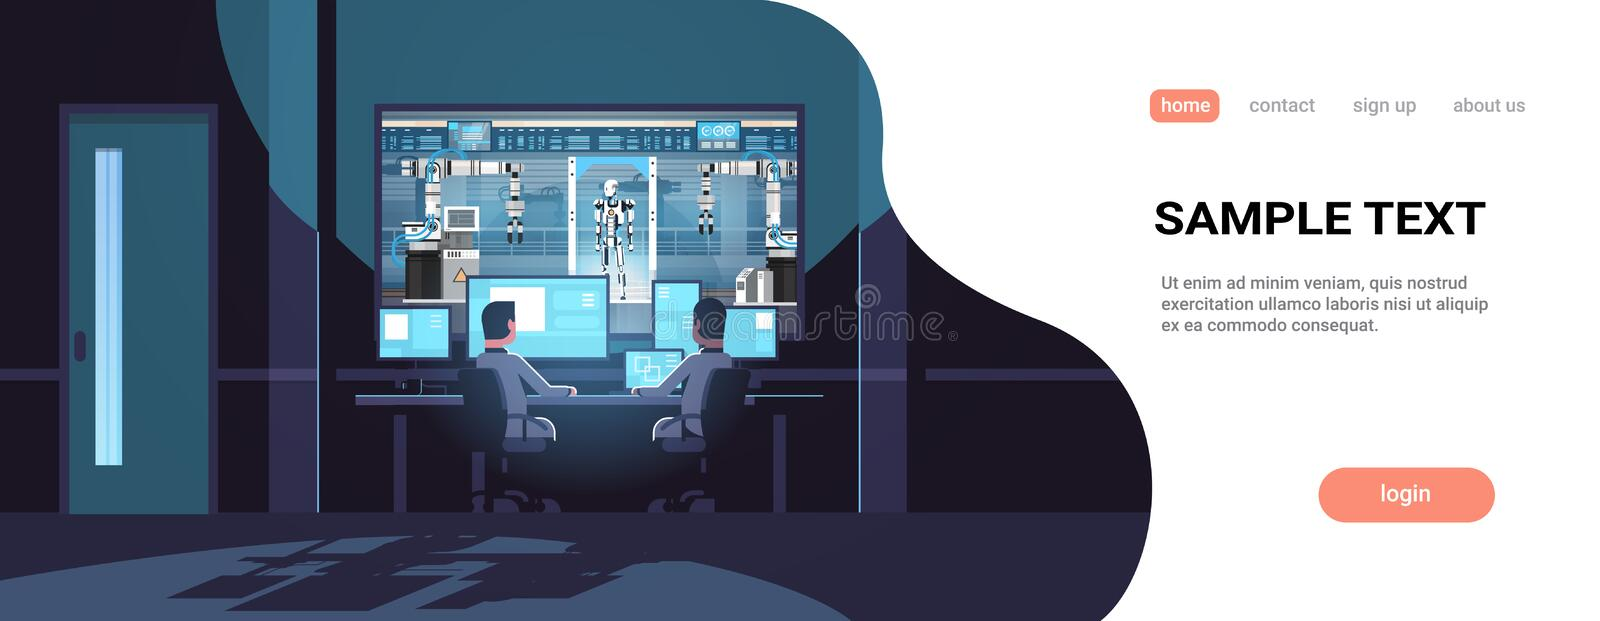 Two engineers looking at monitors behind glass robot production factory robotic industry artificial intelligence dark stock illustration